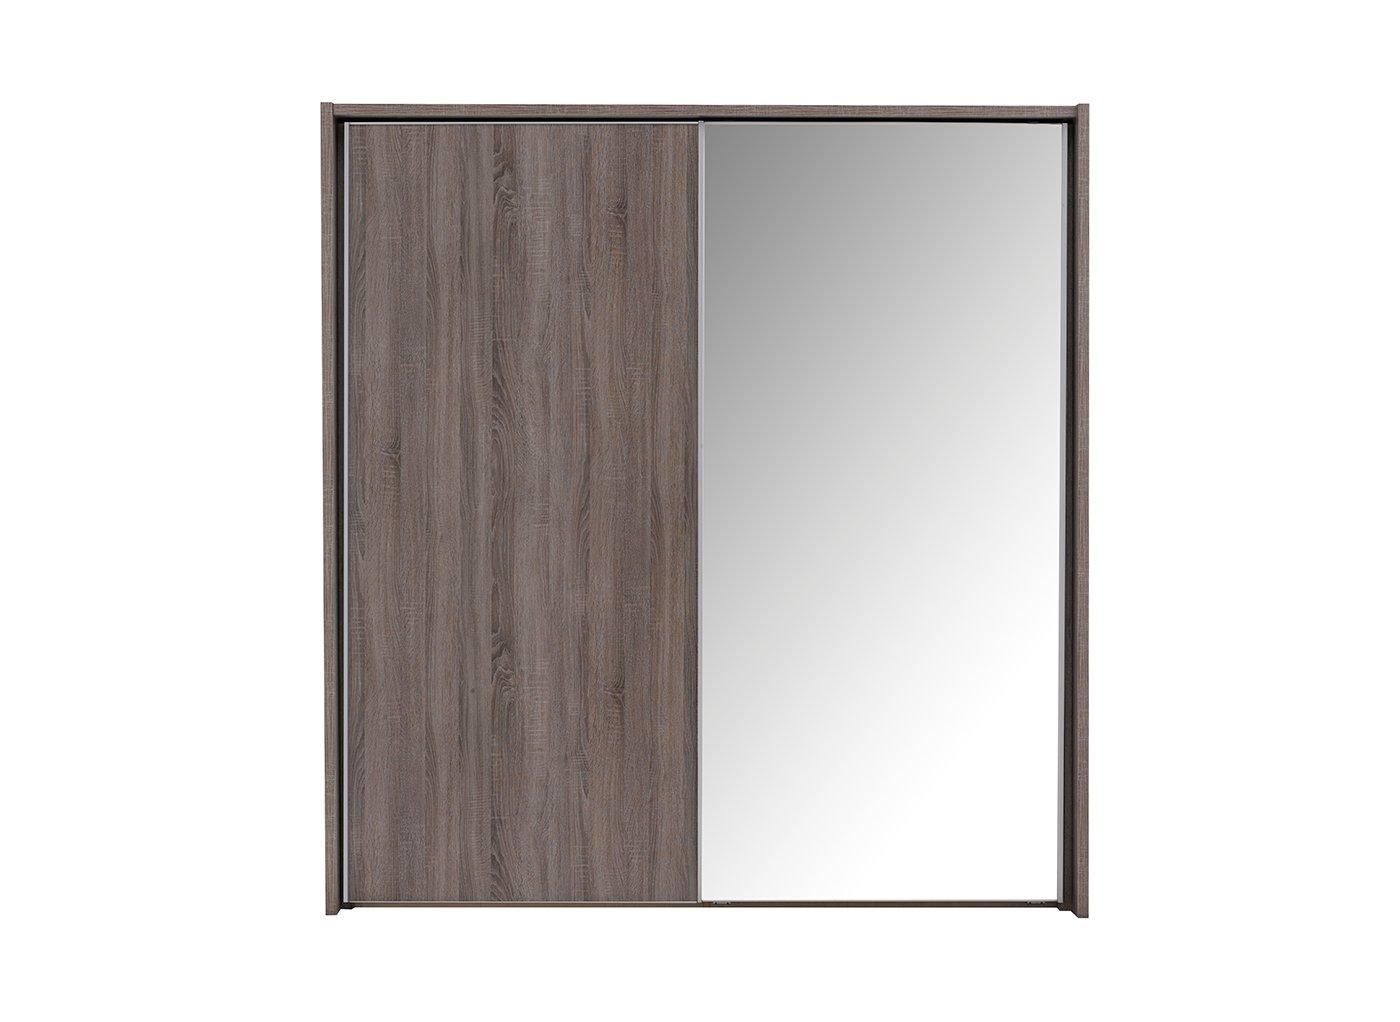 melbourne-2-mirror-door-sliding-wardrobe---oak---medium